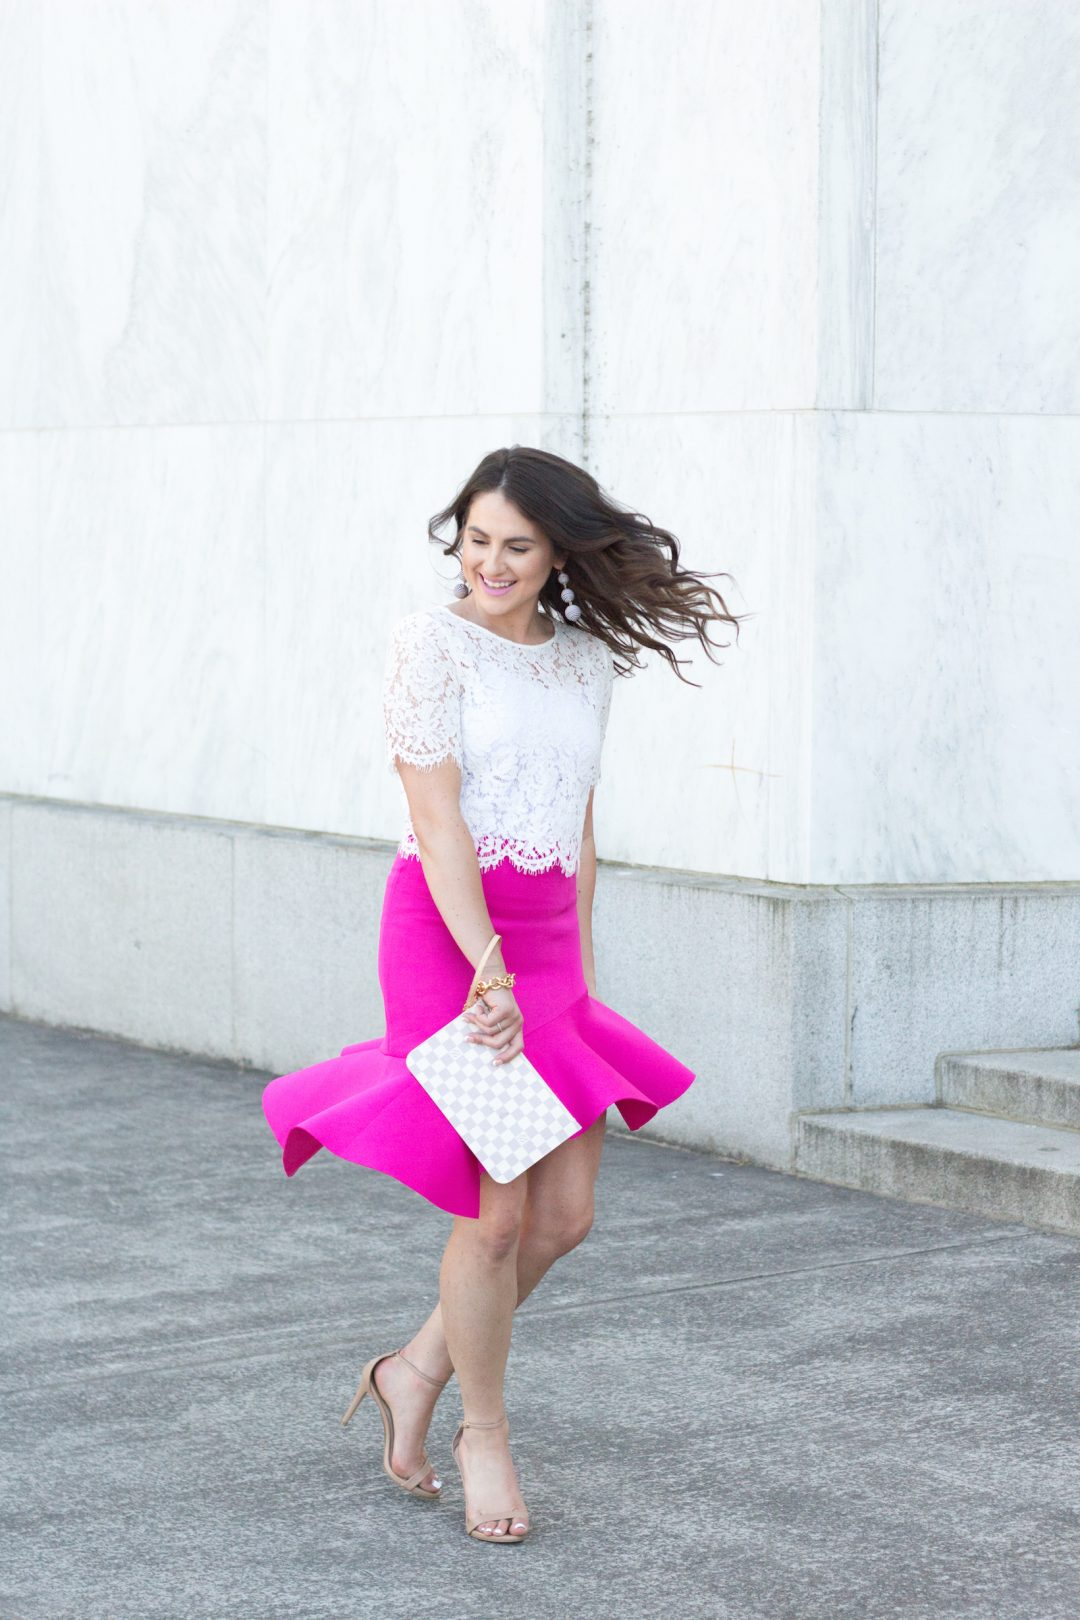 Pink skirt for work wear Wednesday, how to make your professional wardrobe not boring.